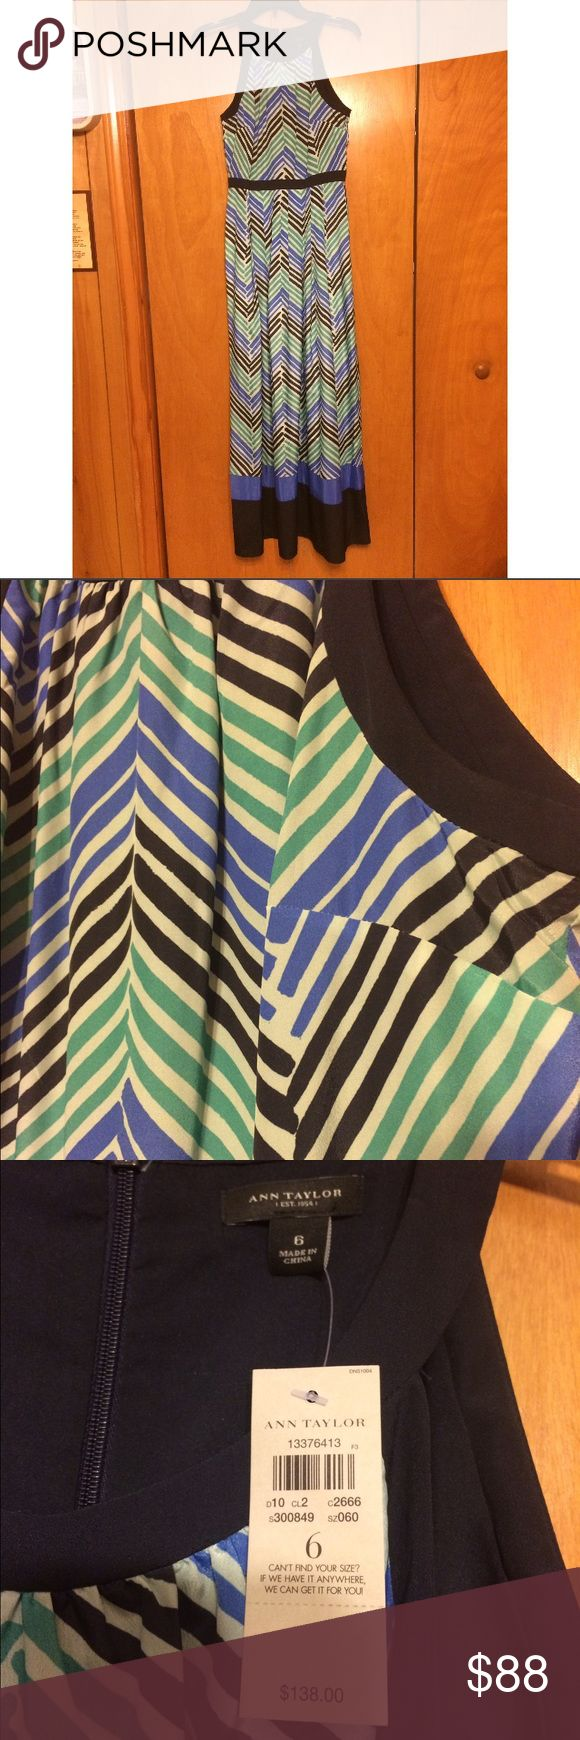 NWT Ann Taylor maxi dress-size 6! Chevron print! New with tags Ann Taylor maxi dress-size 6! Blue, teal/green and black chevron print. Full length dress! No flaws! Originally $138! SEND REASONABLE OFFERS :) Ann Taylor Dresses Maxi